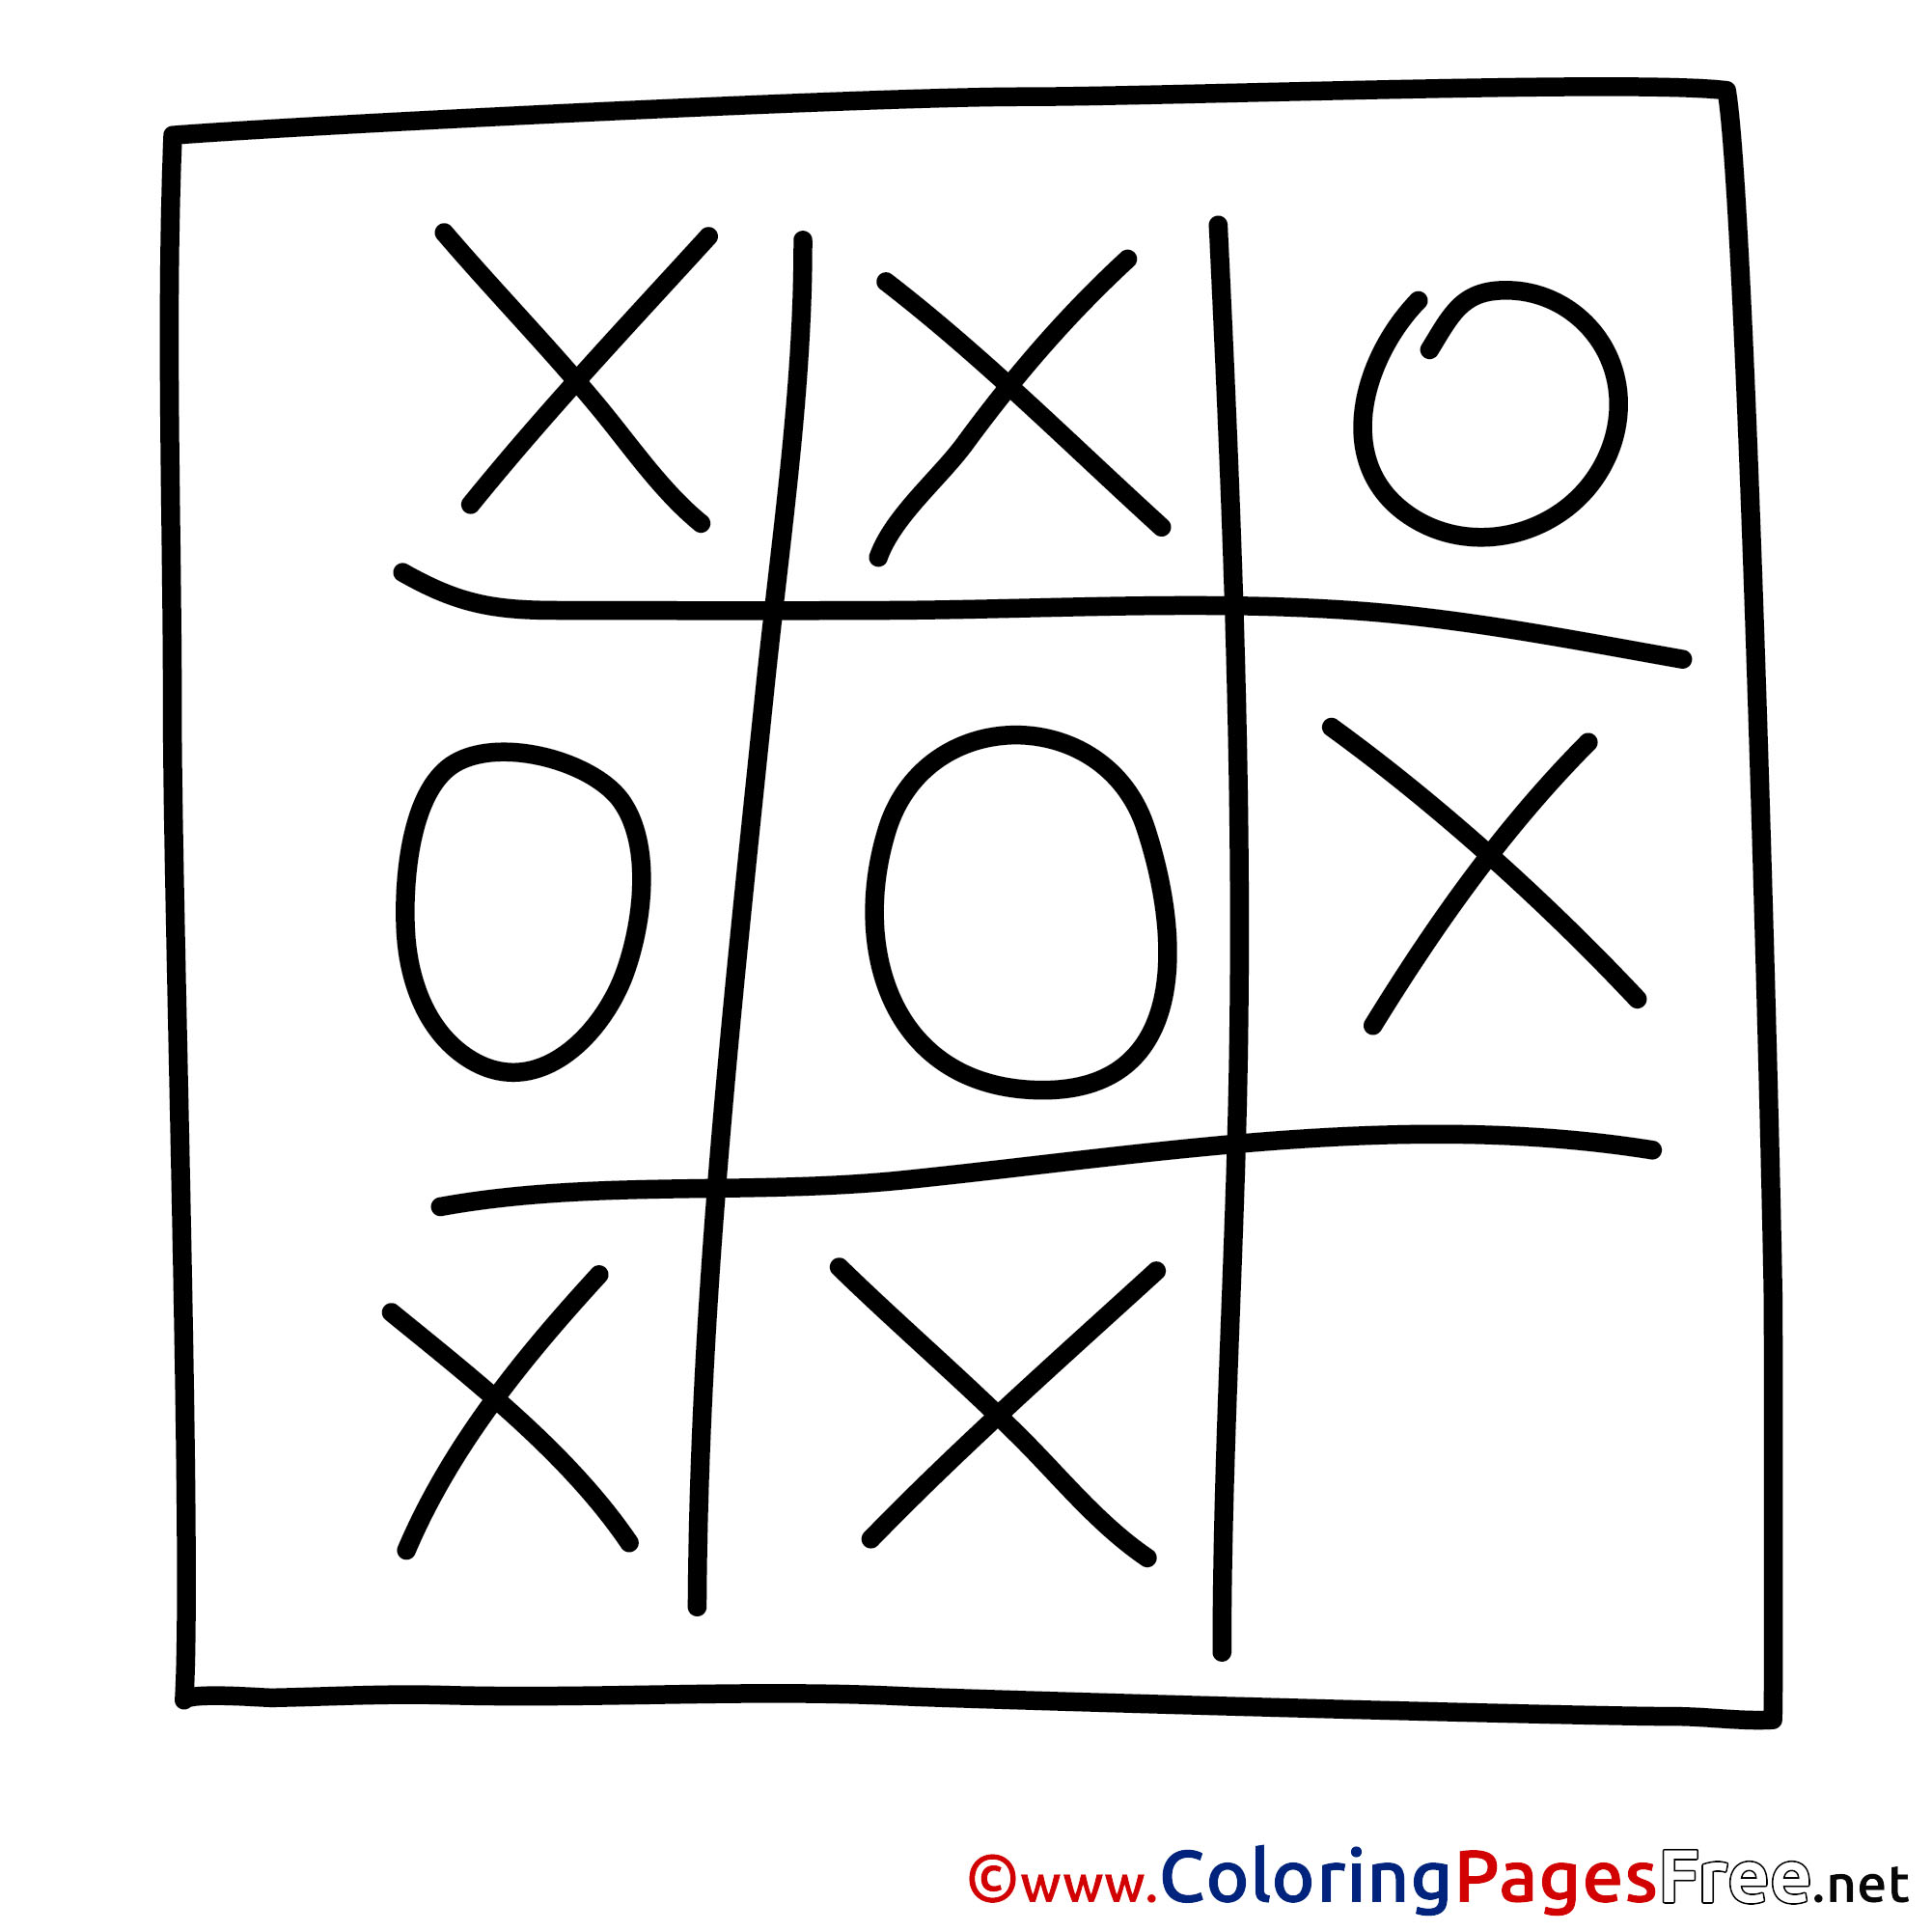 tic tac toe download colouring sheet free